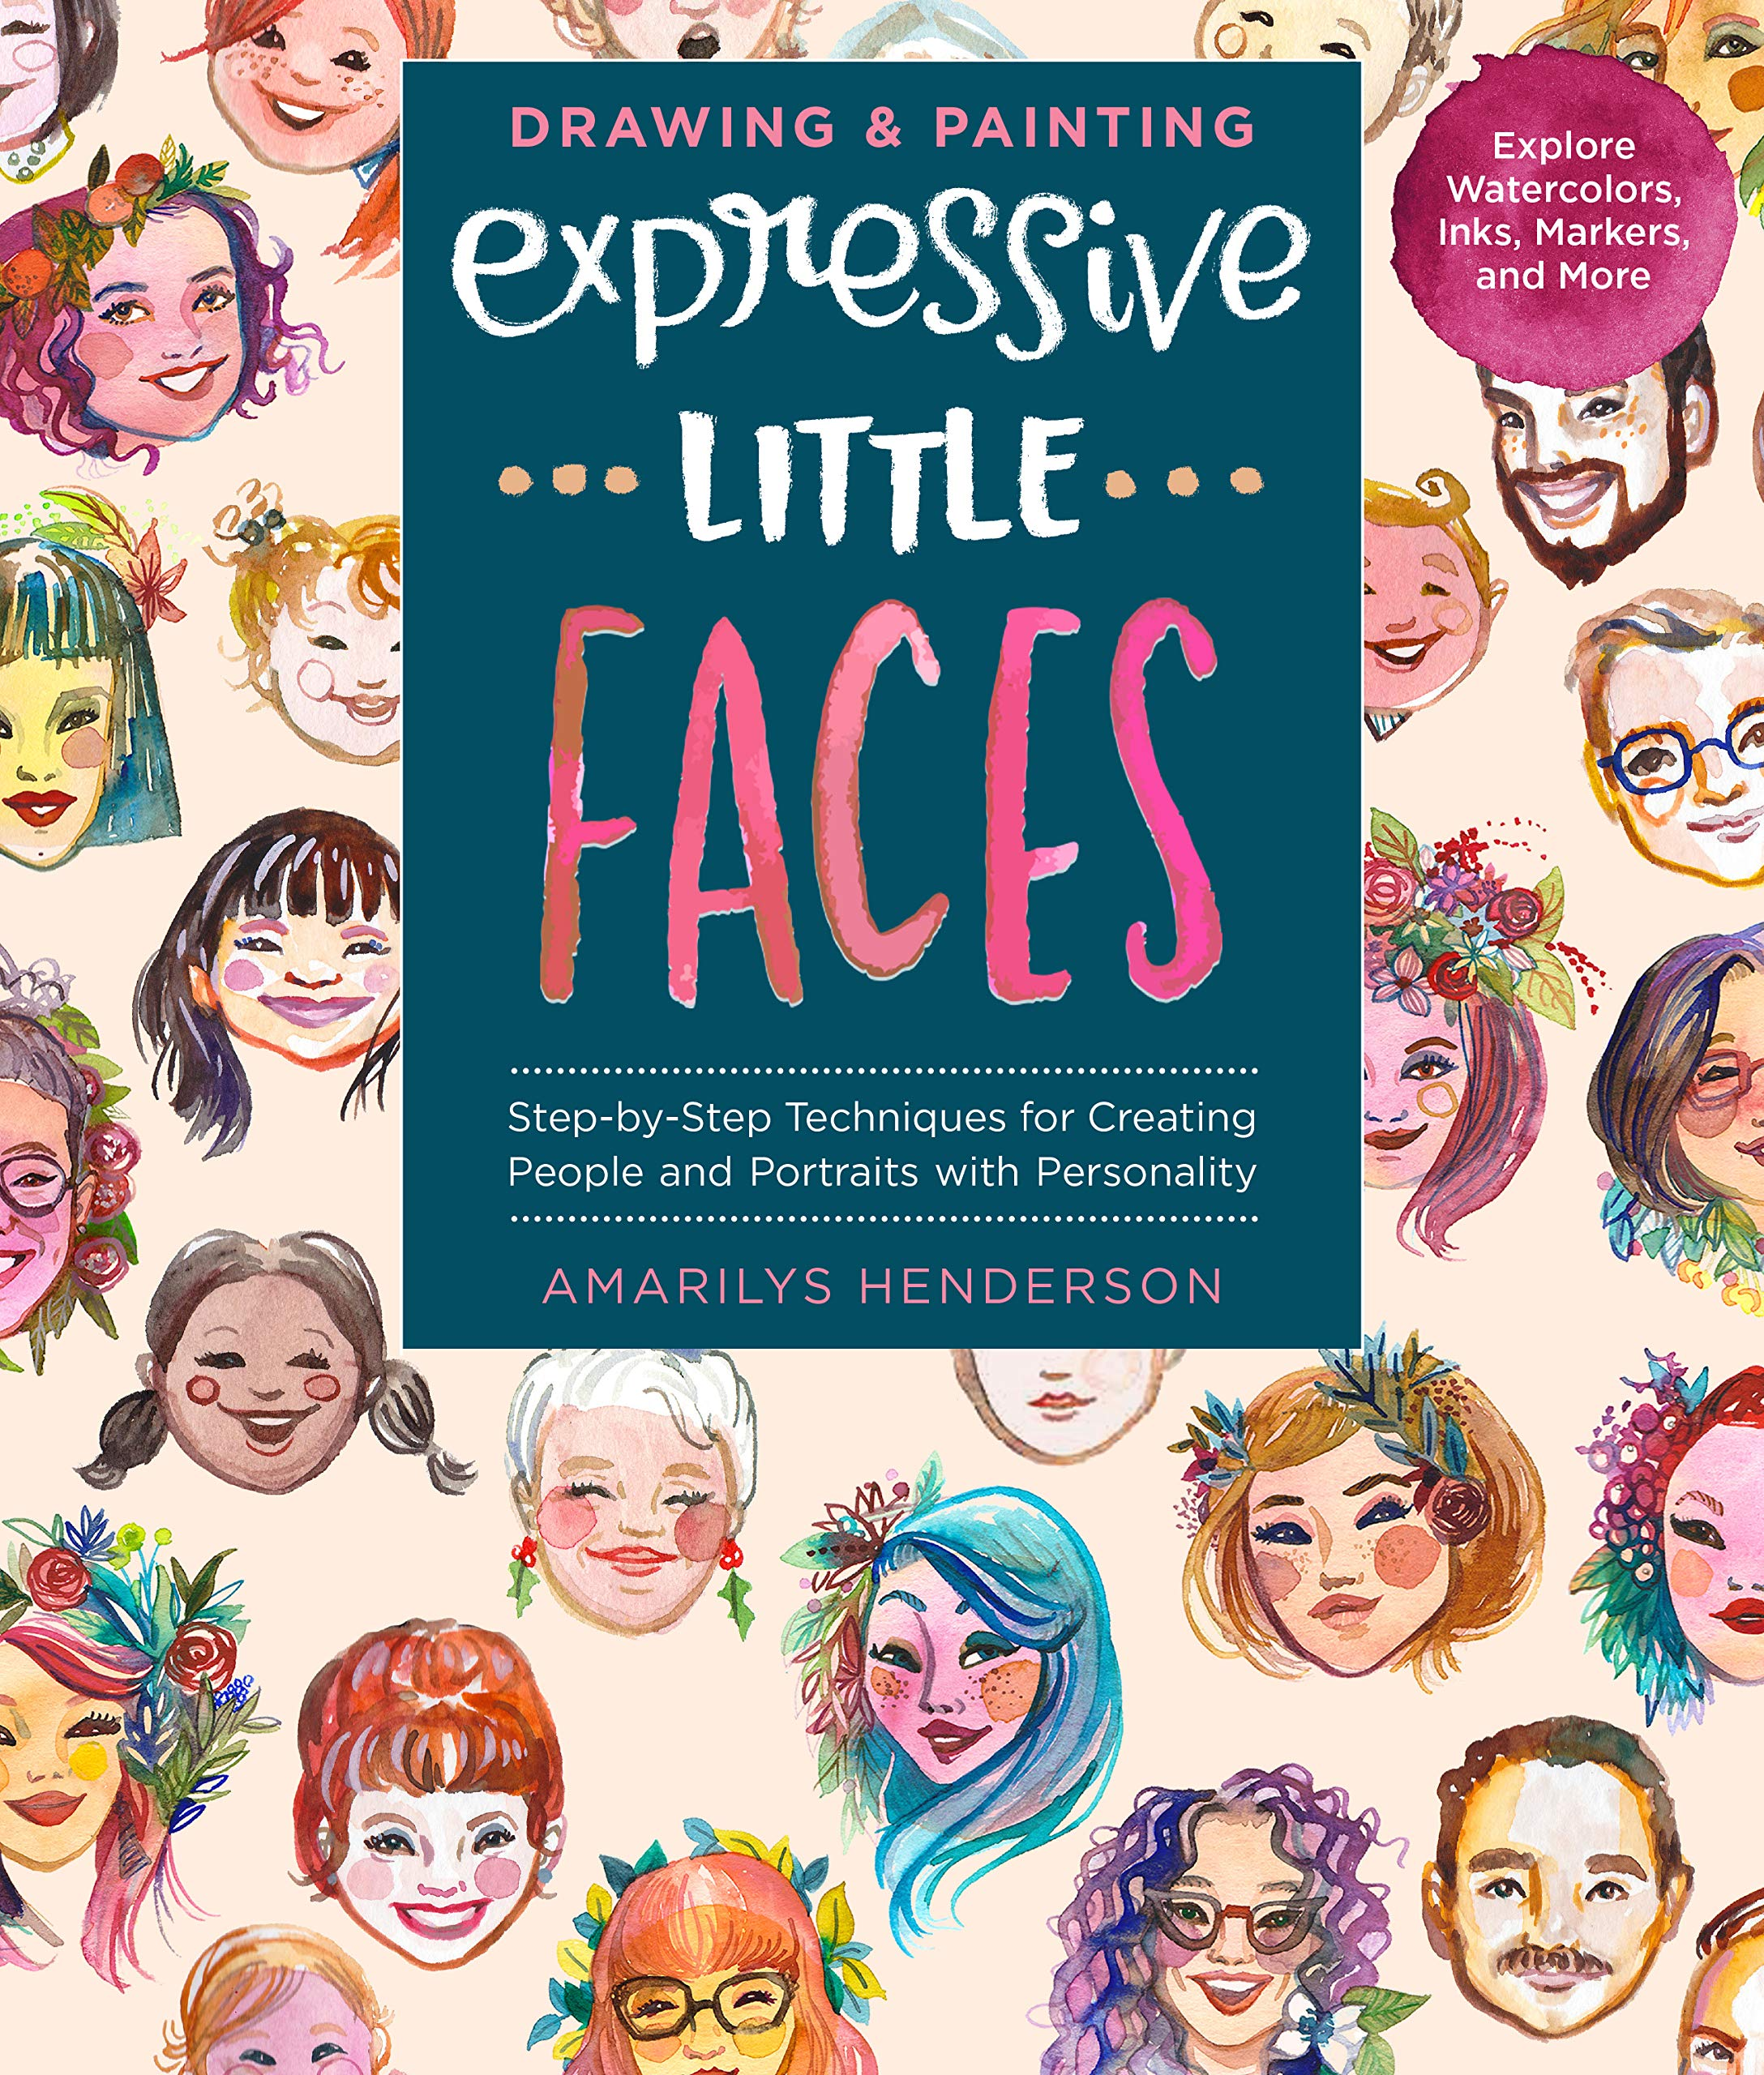 Drawing and Painting Expressive Little Faces: Step-by-Step Techniques for Creating People and Portraits with Personality